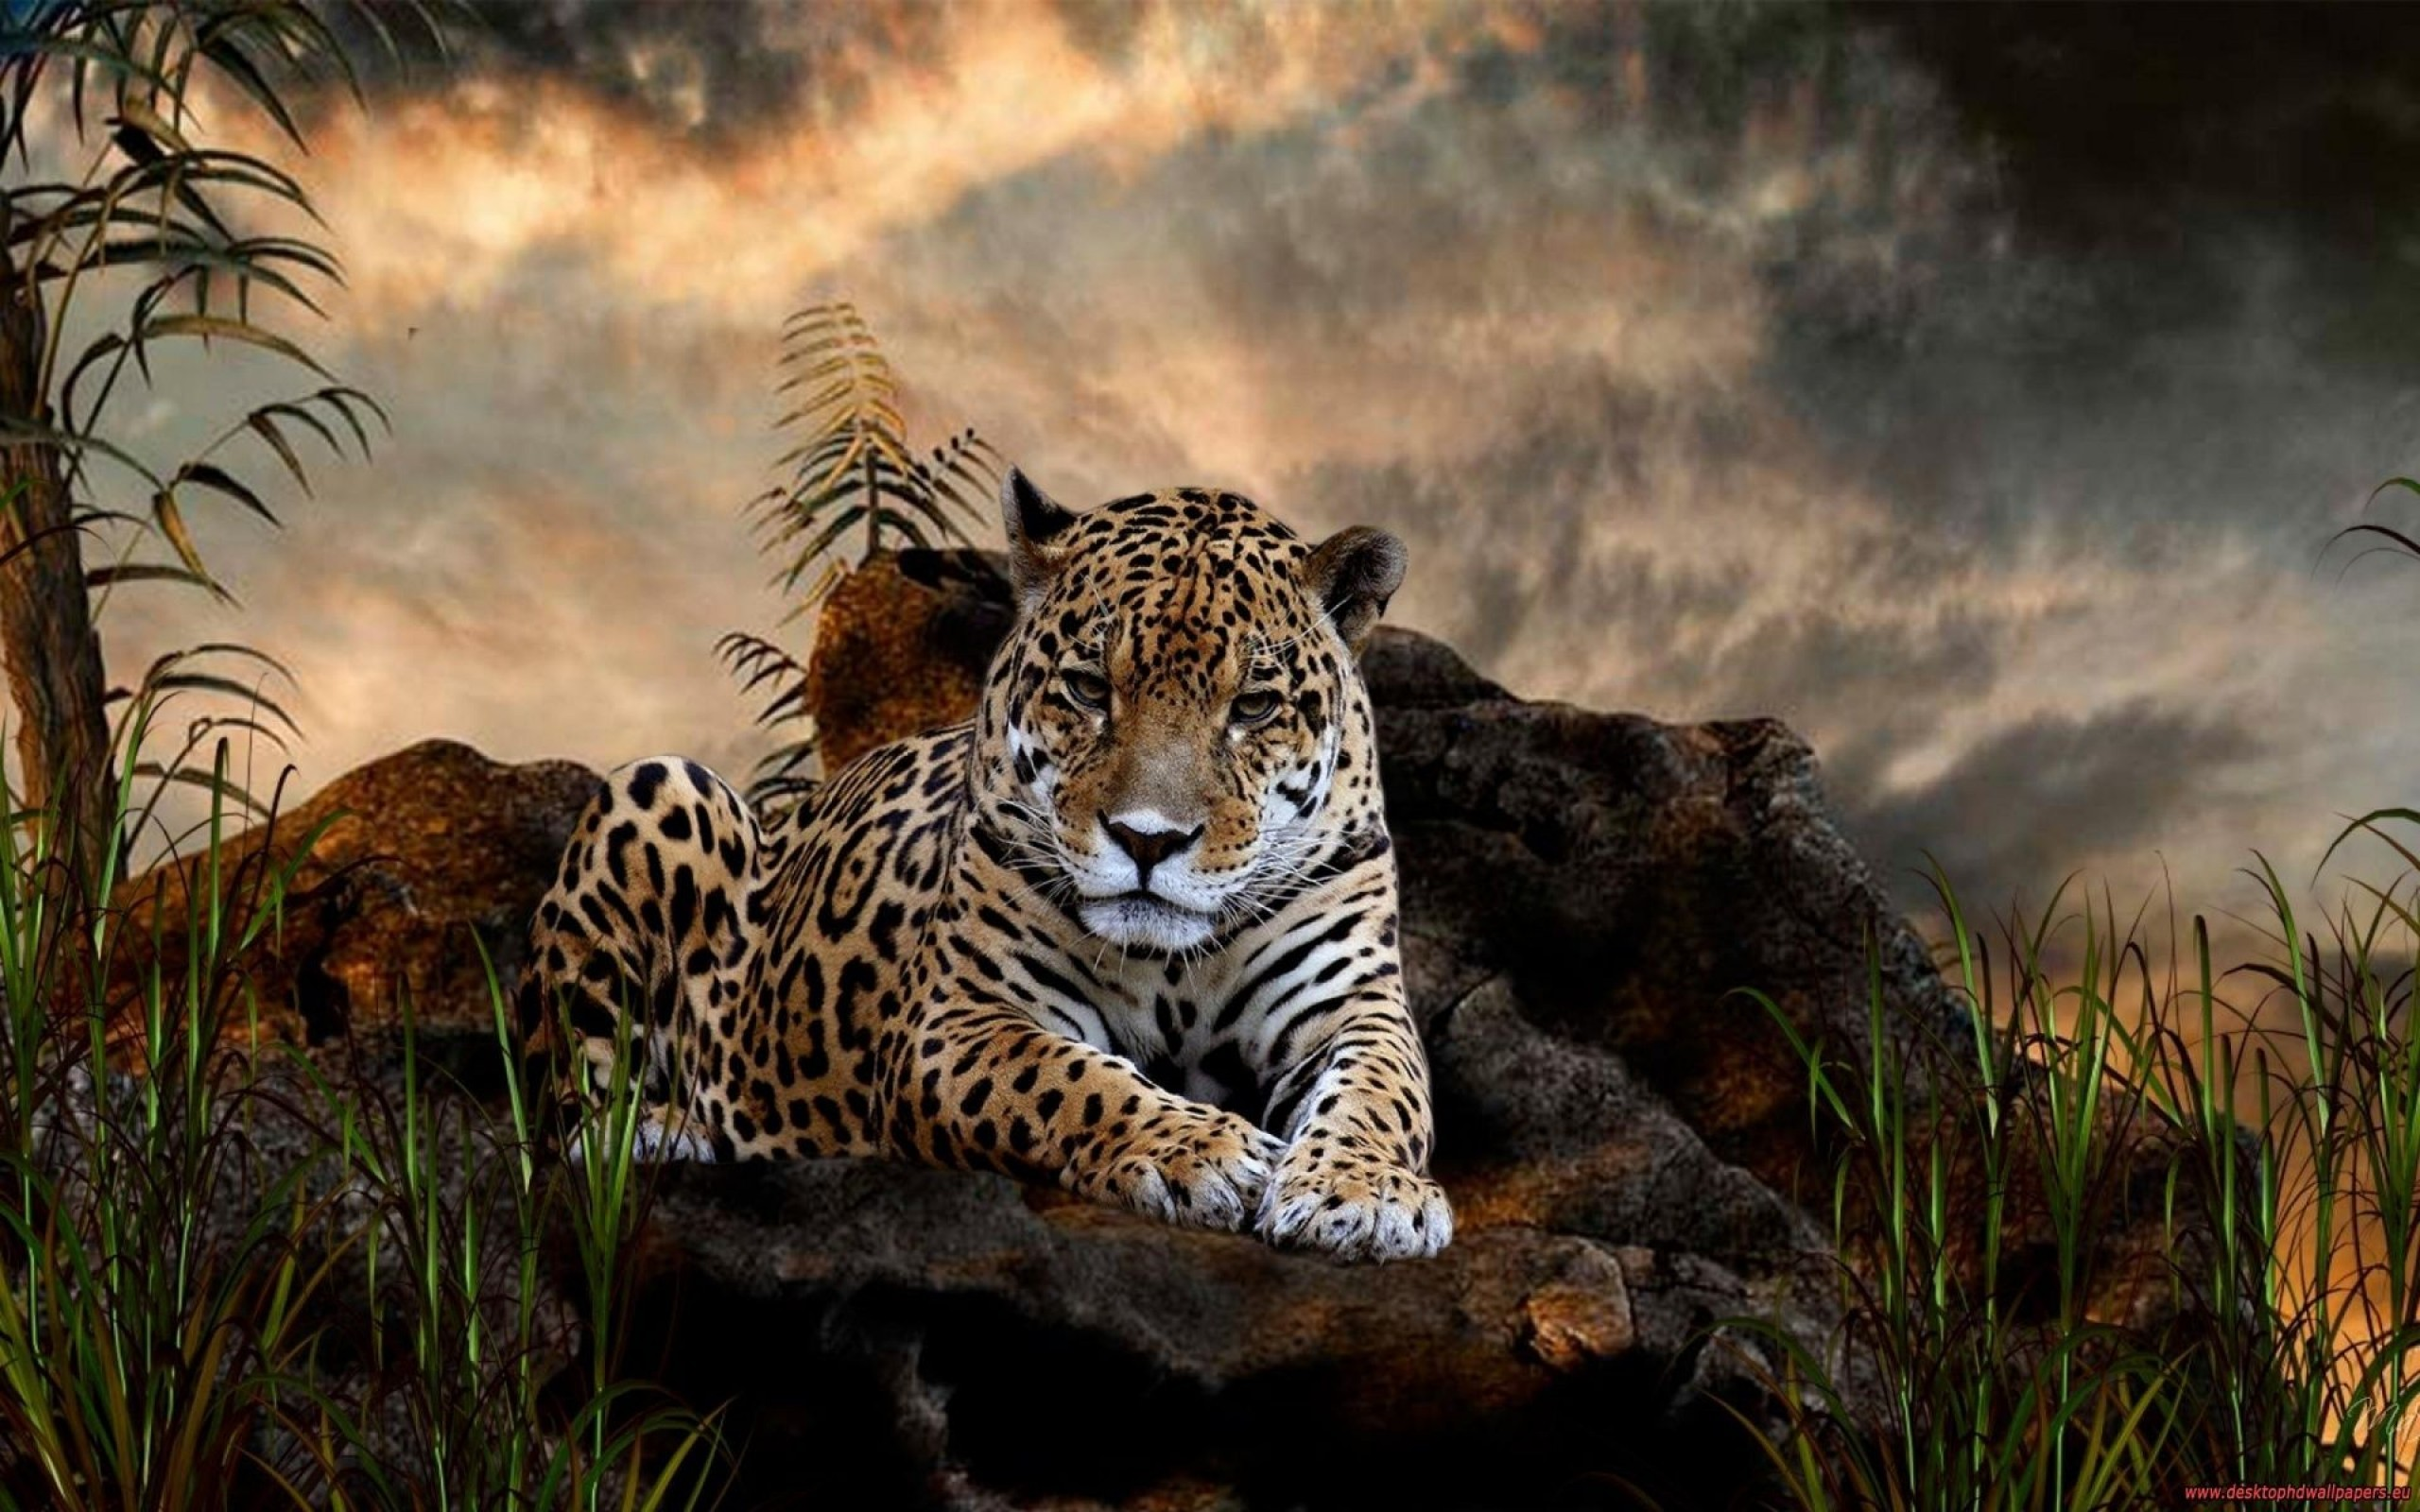 2560x1600 Images of big cats in the wild dowload